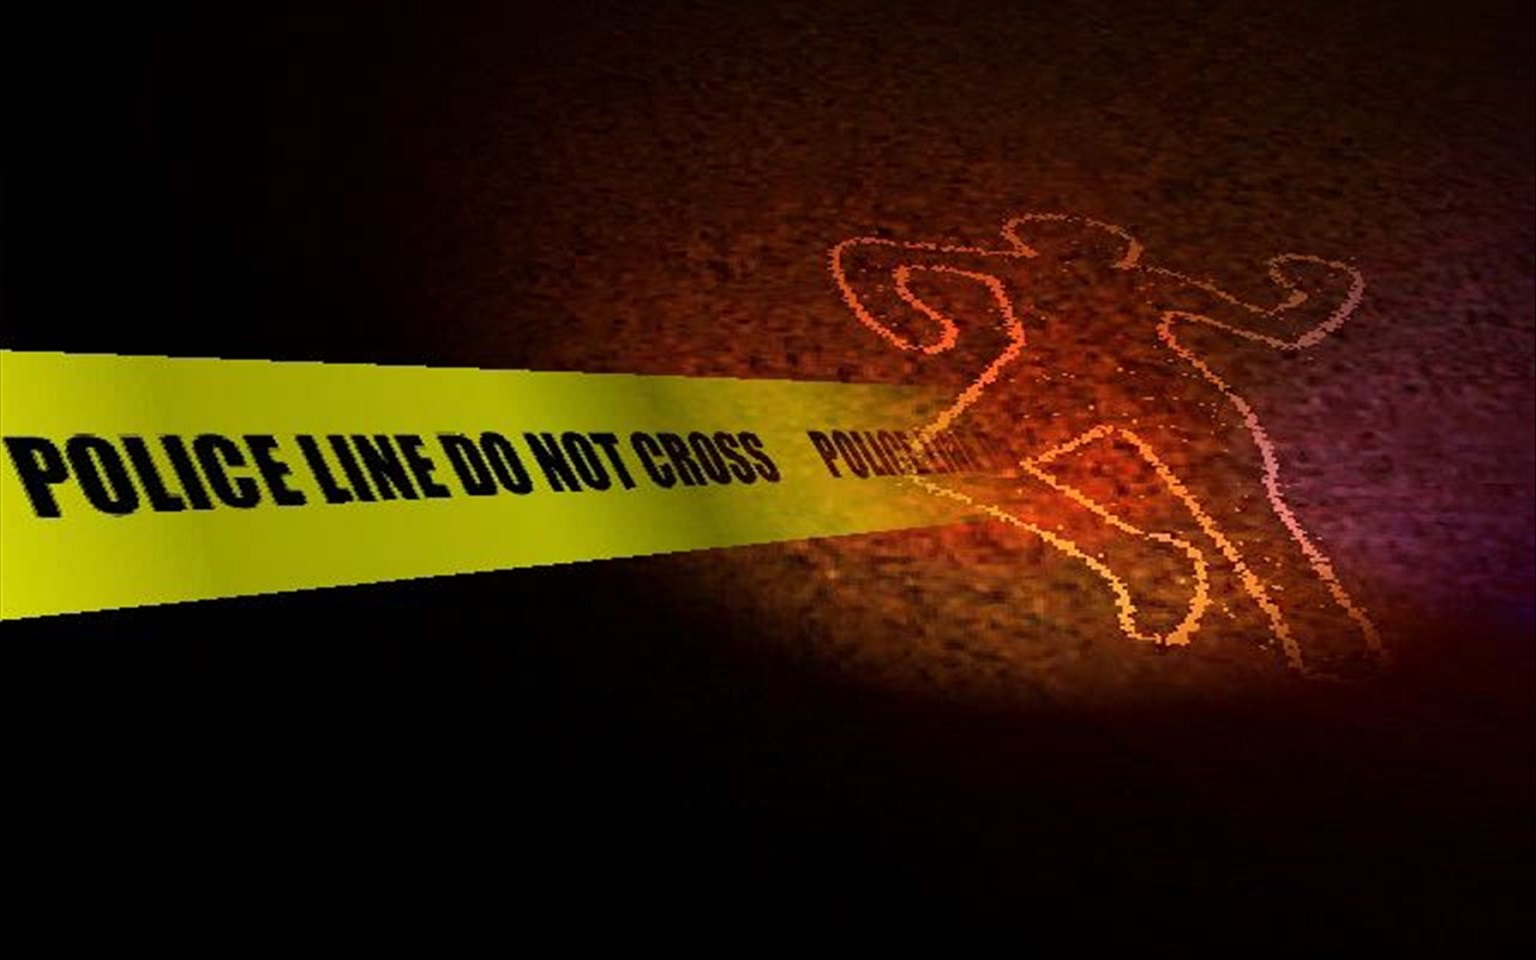 CPD is asking anyone with information to call the Homicide Tip Line at 423-643-5100. Callers can remain anonymous and all tips go directly to investigators. (Image: MGN)